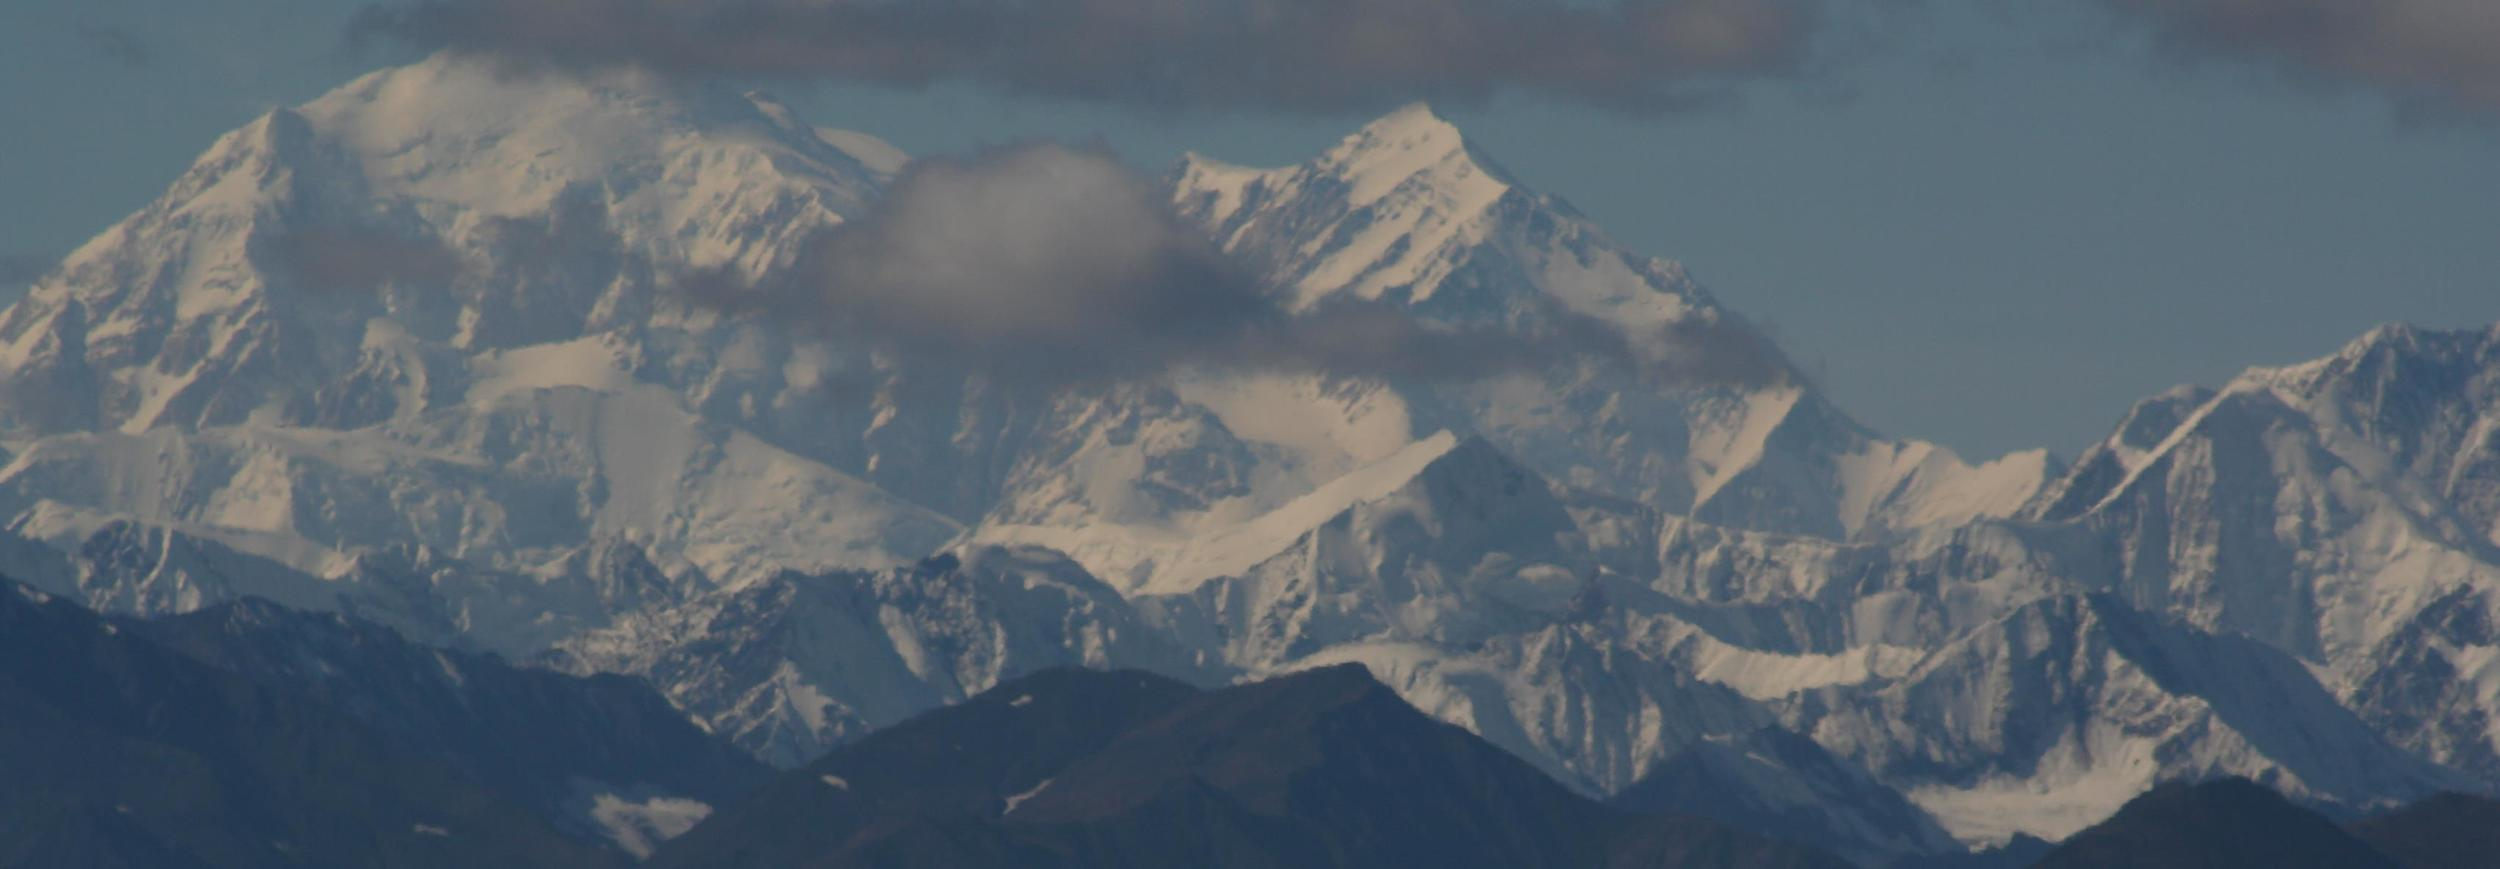 Denali. Alaska is home of many people, places, and experiences dear to me - including research for my first major piece of scholarship: my dissertation.  [Photo by Patti]